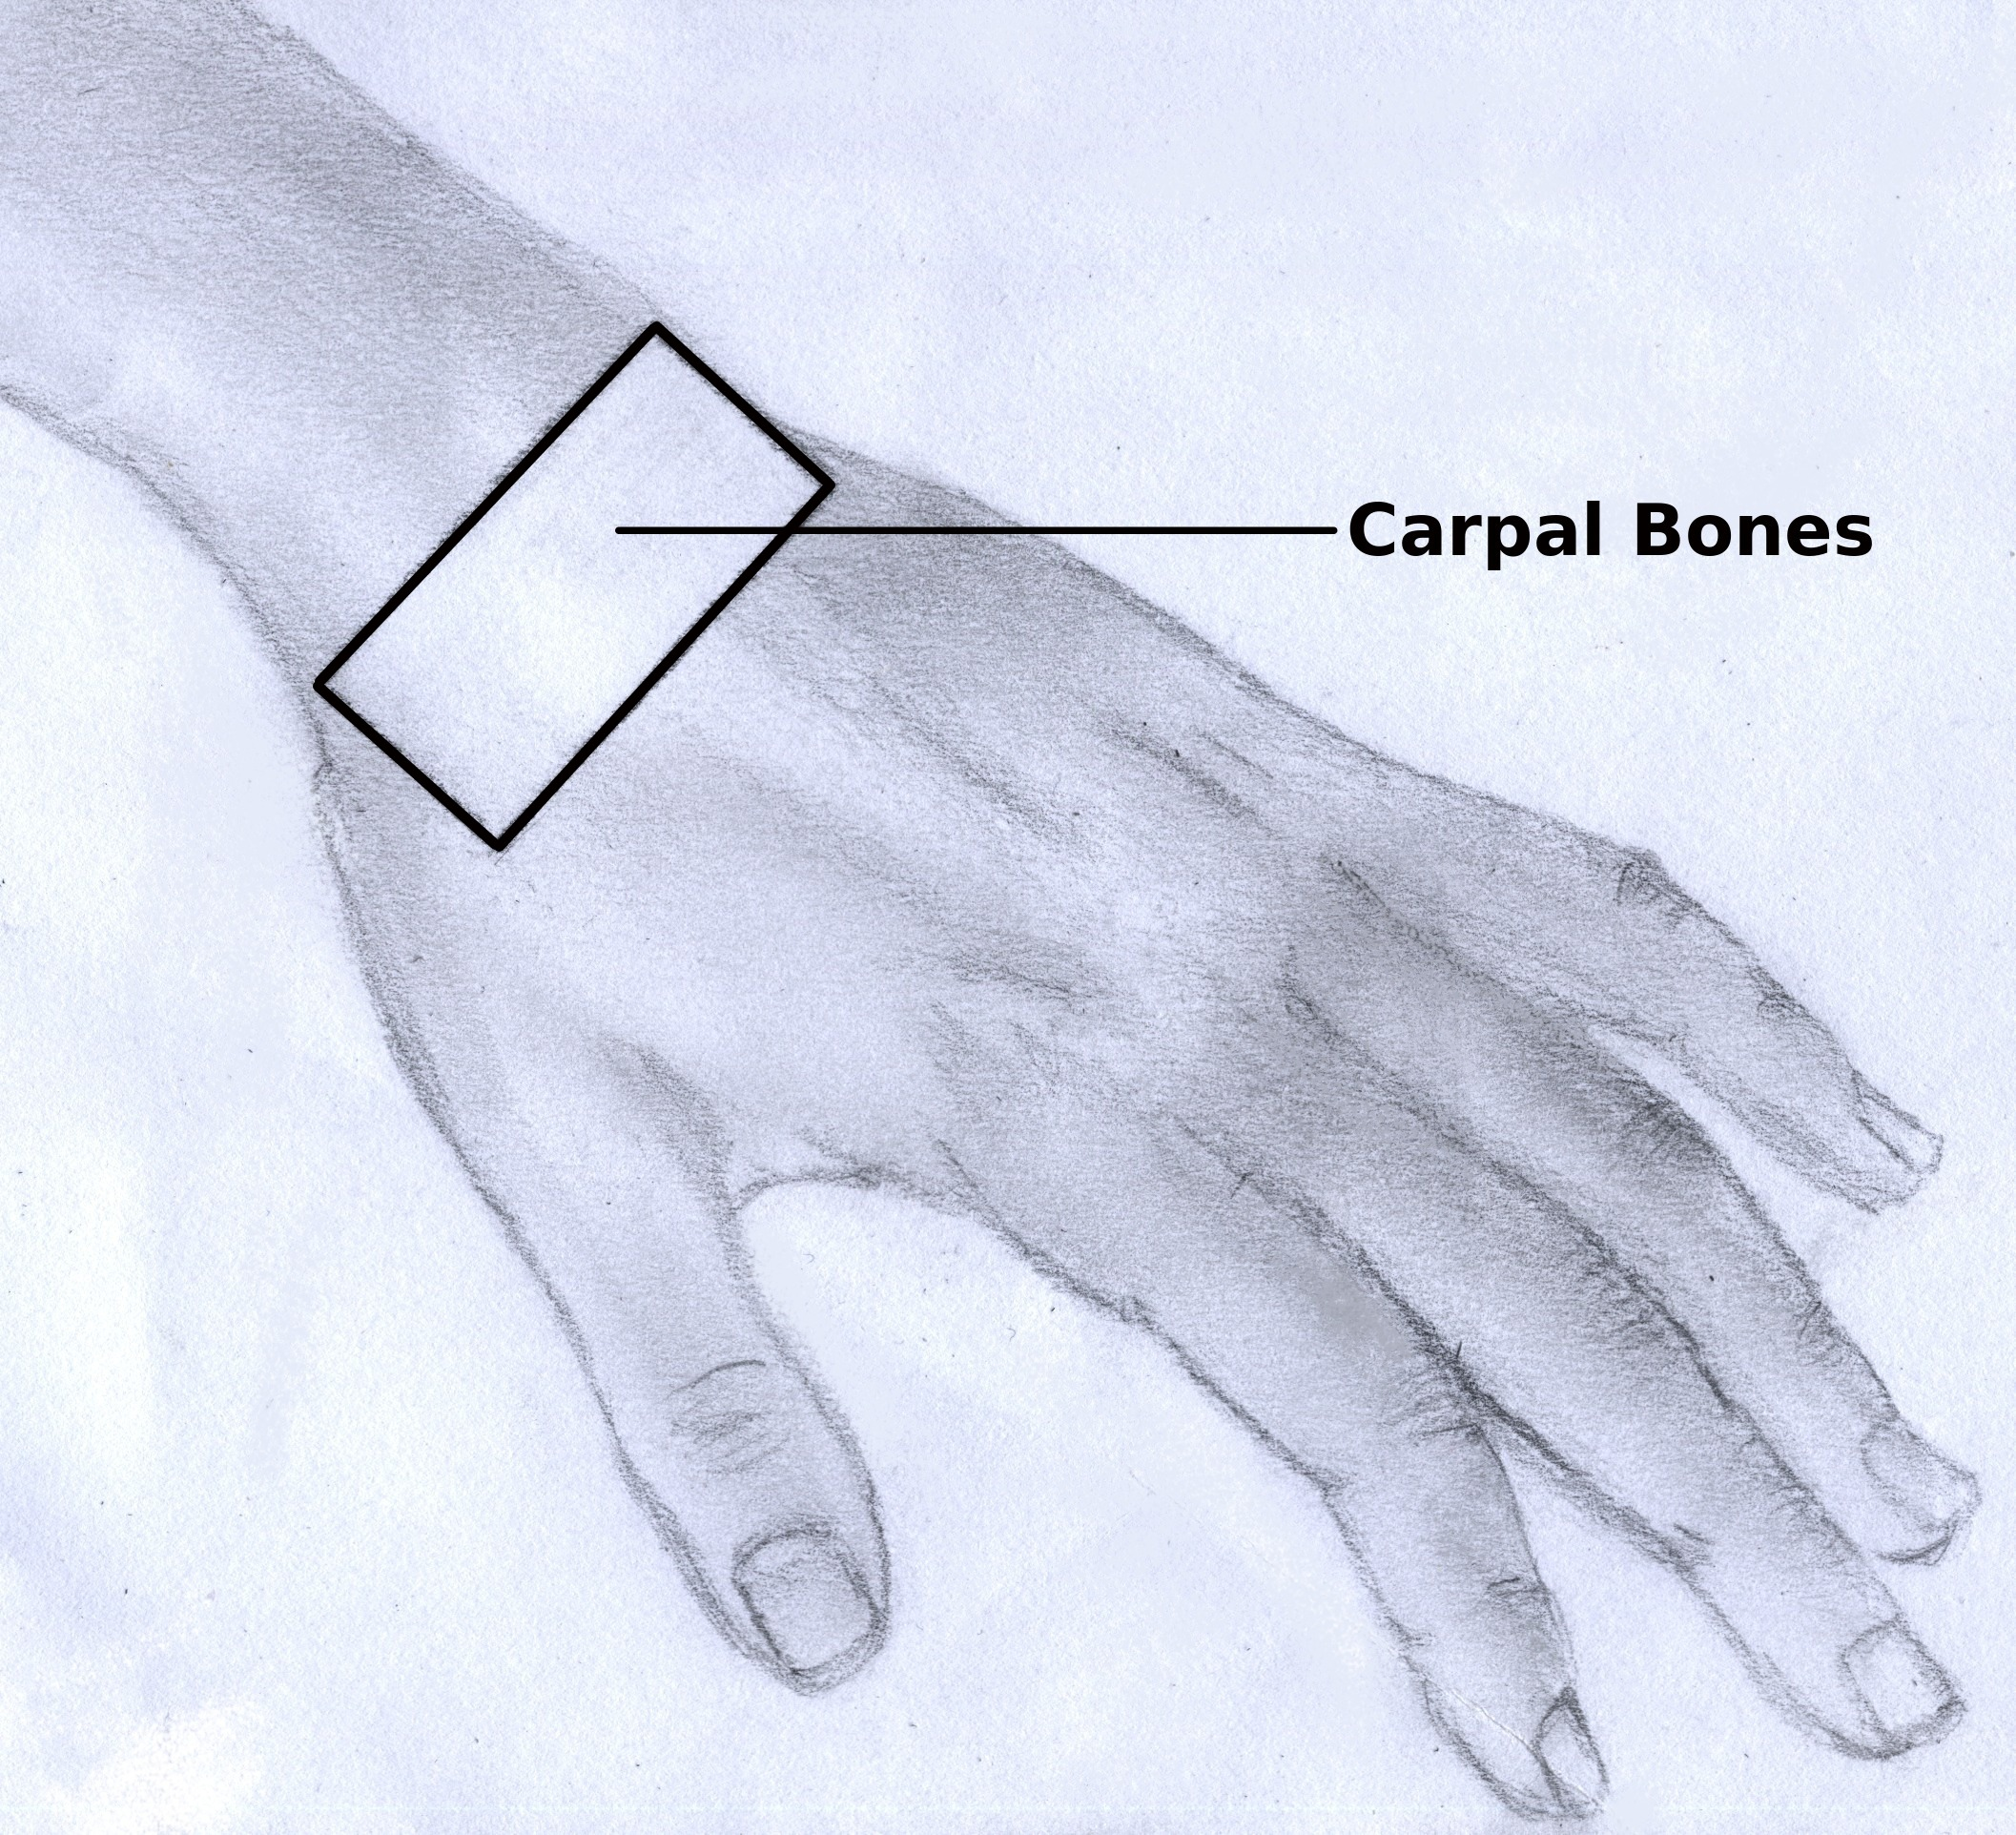 Filehand Carpal Bonesg Wikimedia Commons